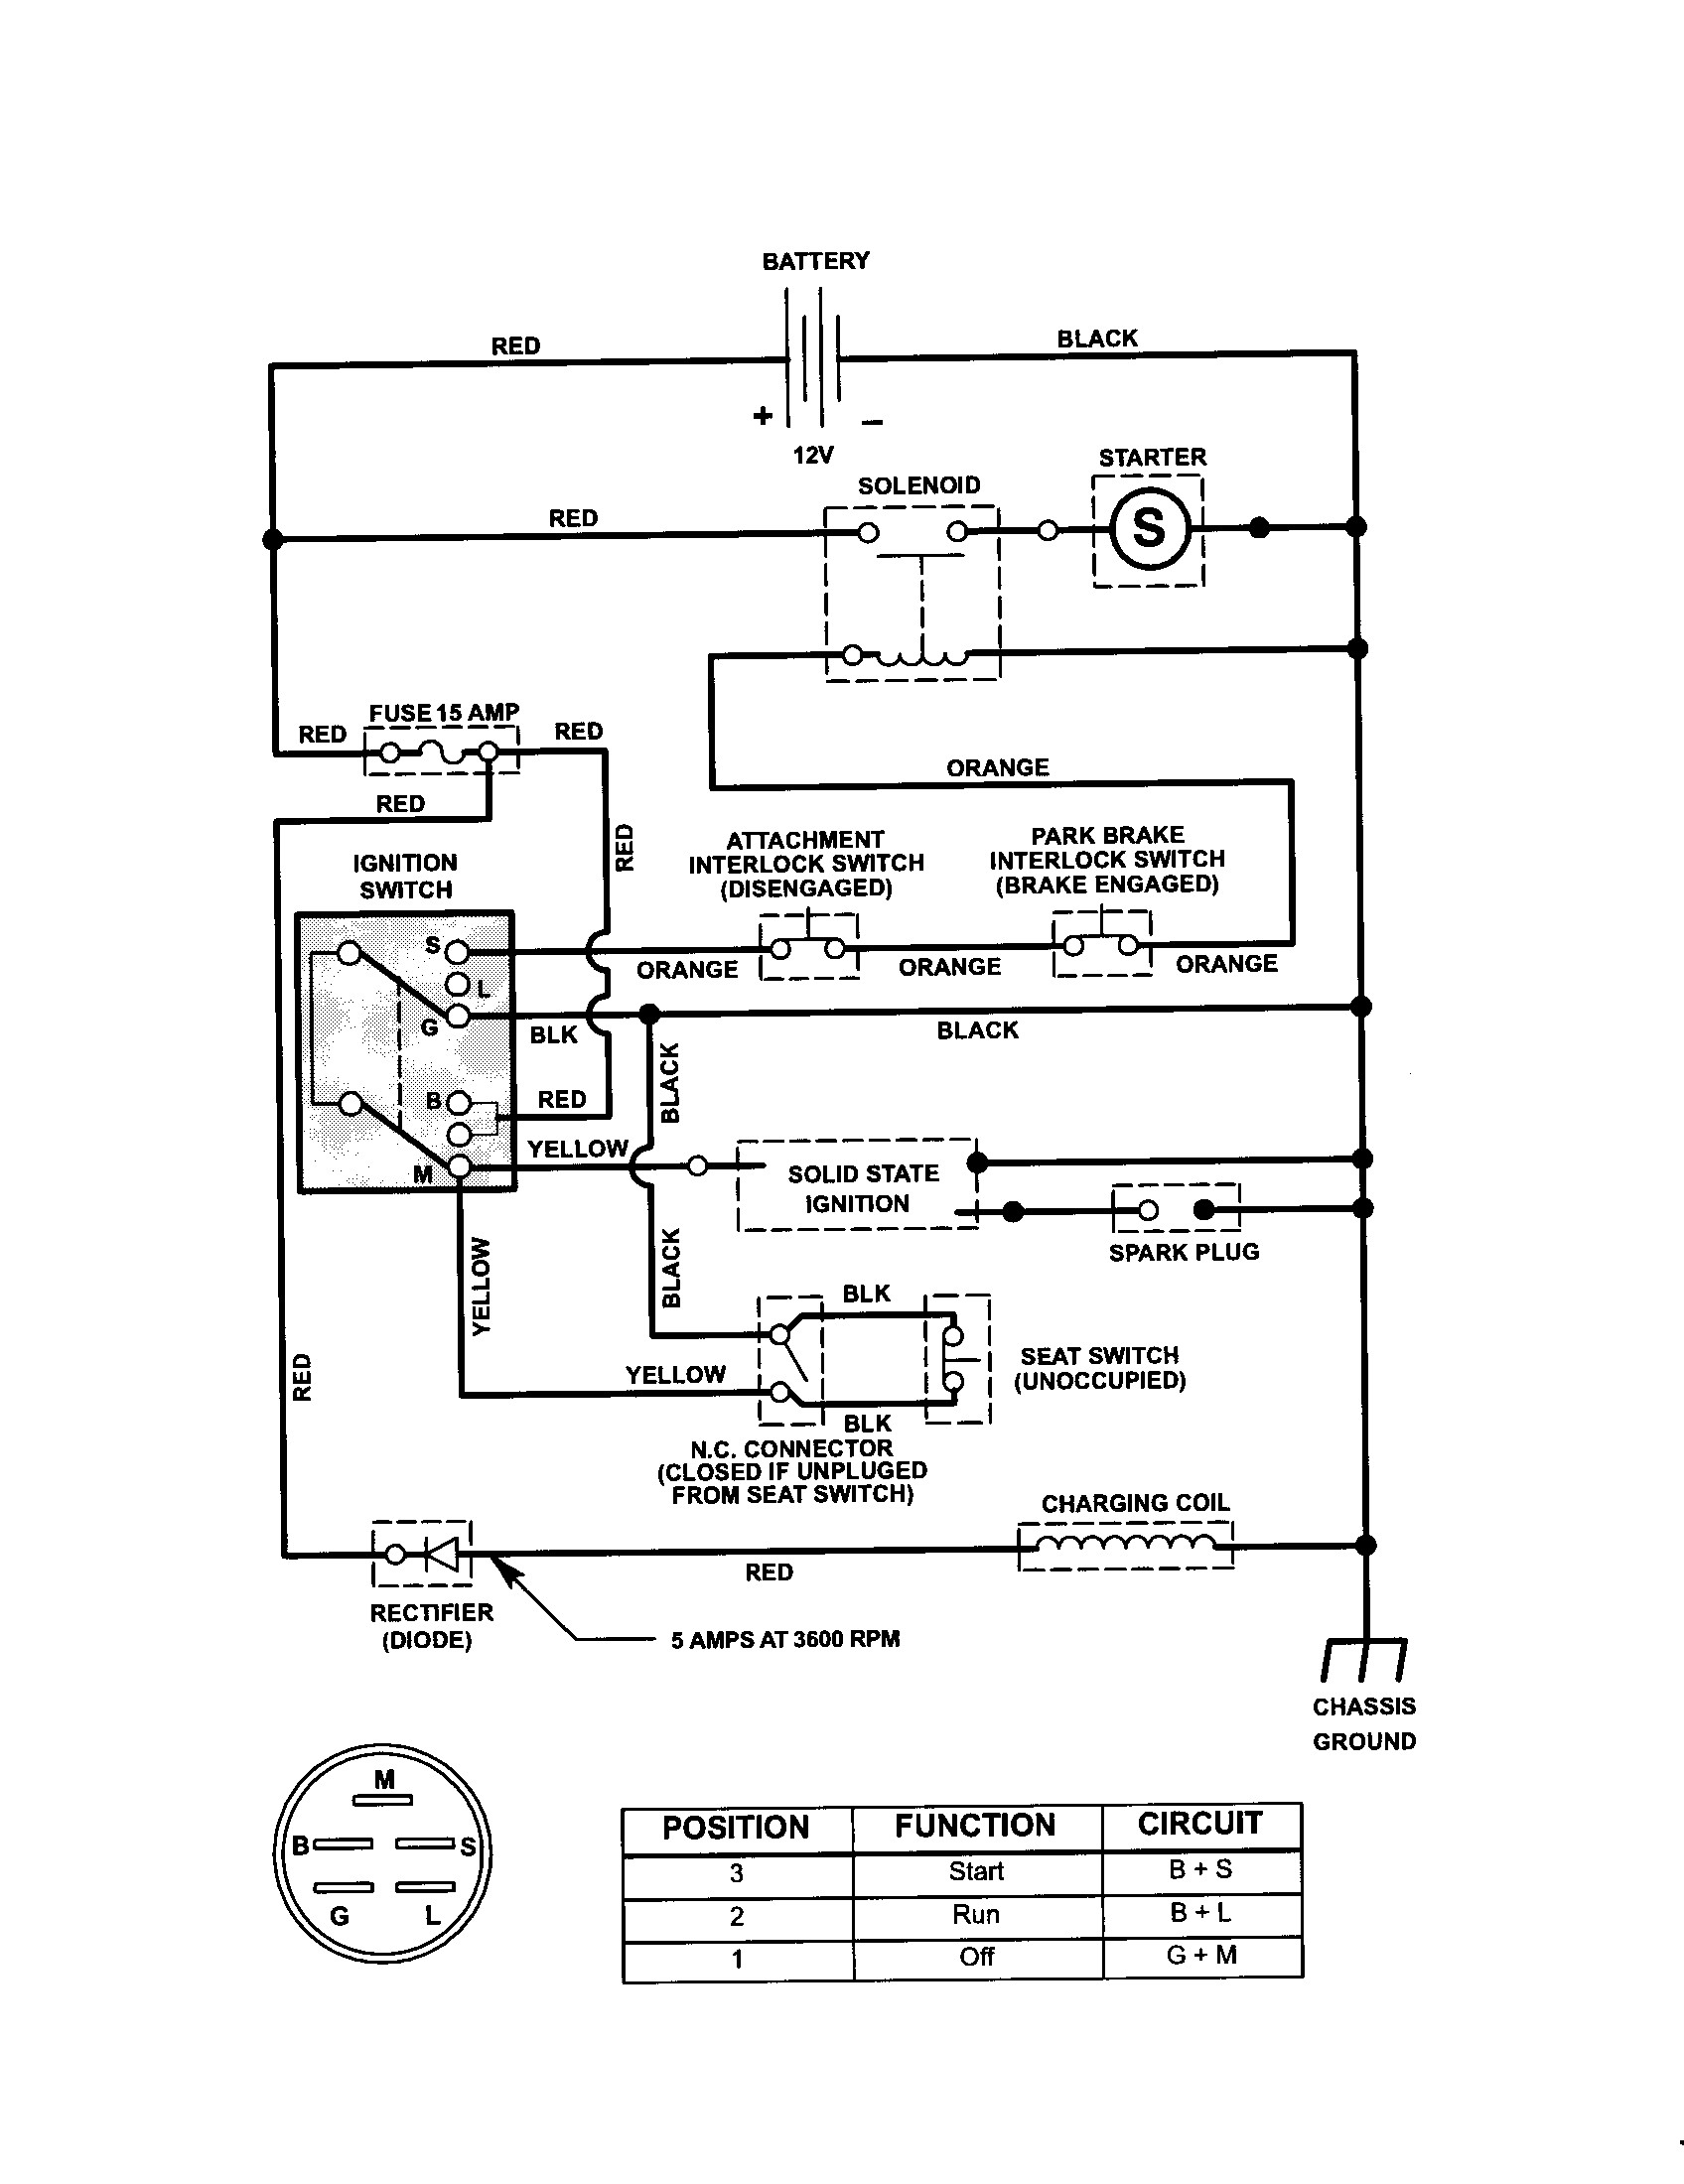 wiring diagram for craftsman riding lawn mower Collection-Wiring Diagram for Ignition Switch Lawn Mower Save Craftsman Riding Mower Electrical Diagram 13-r